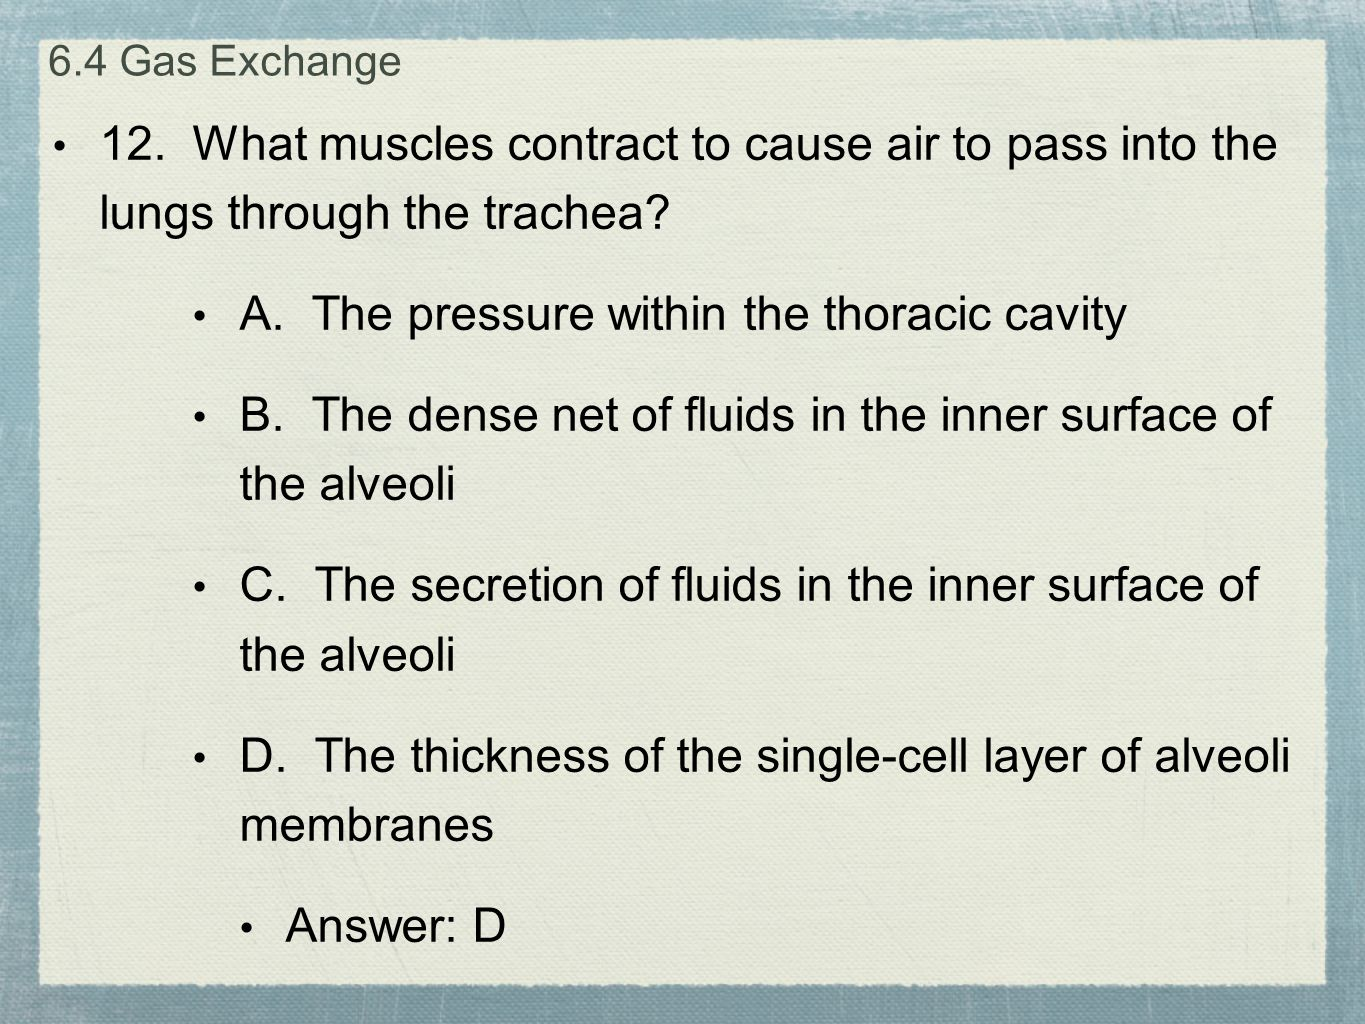 A. The pressure within the thoracic cavity